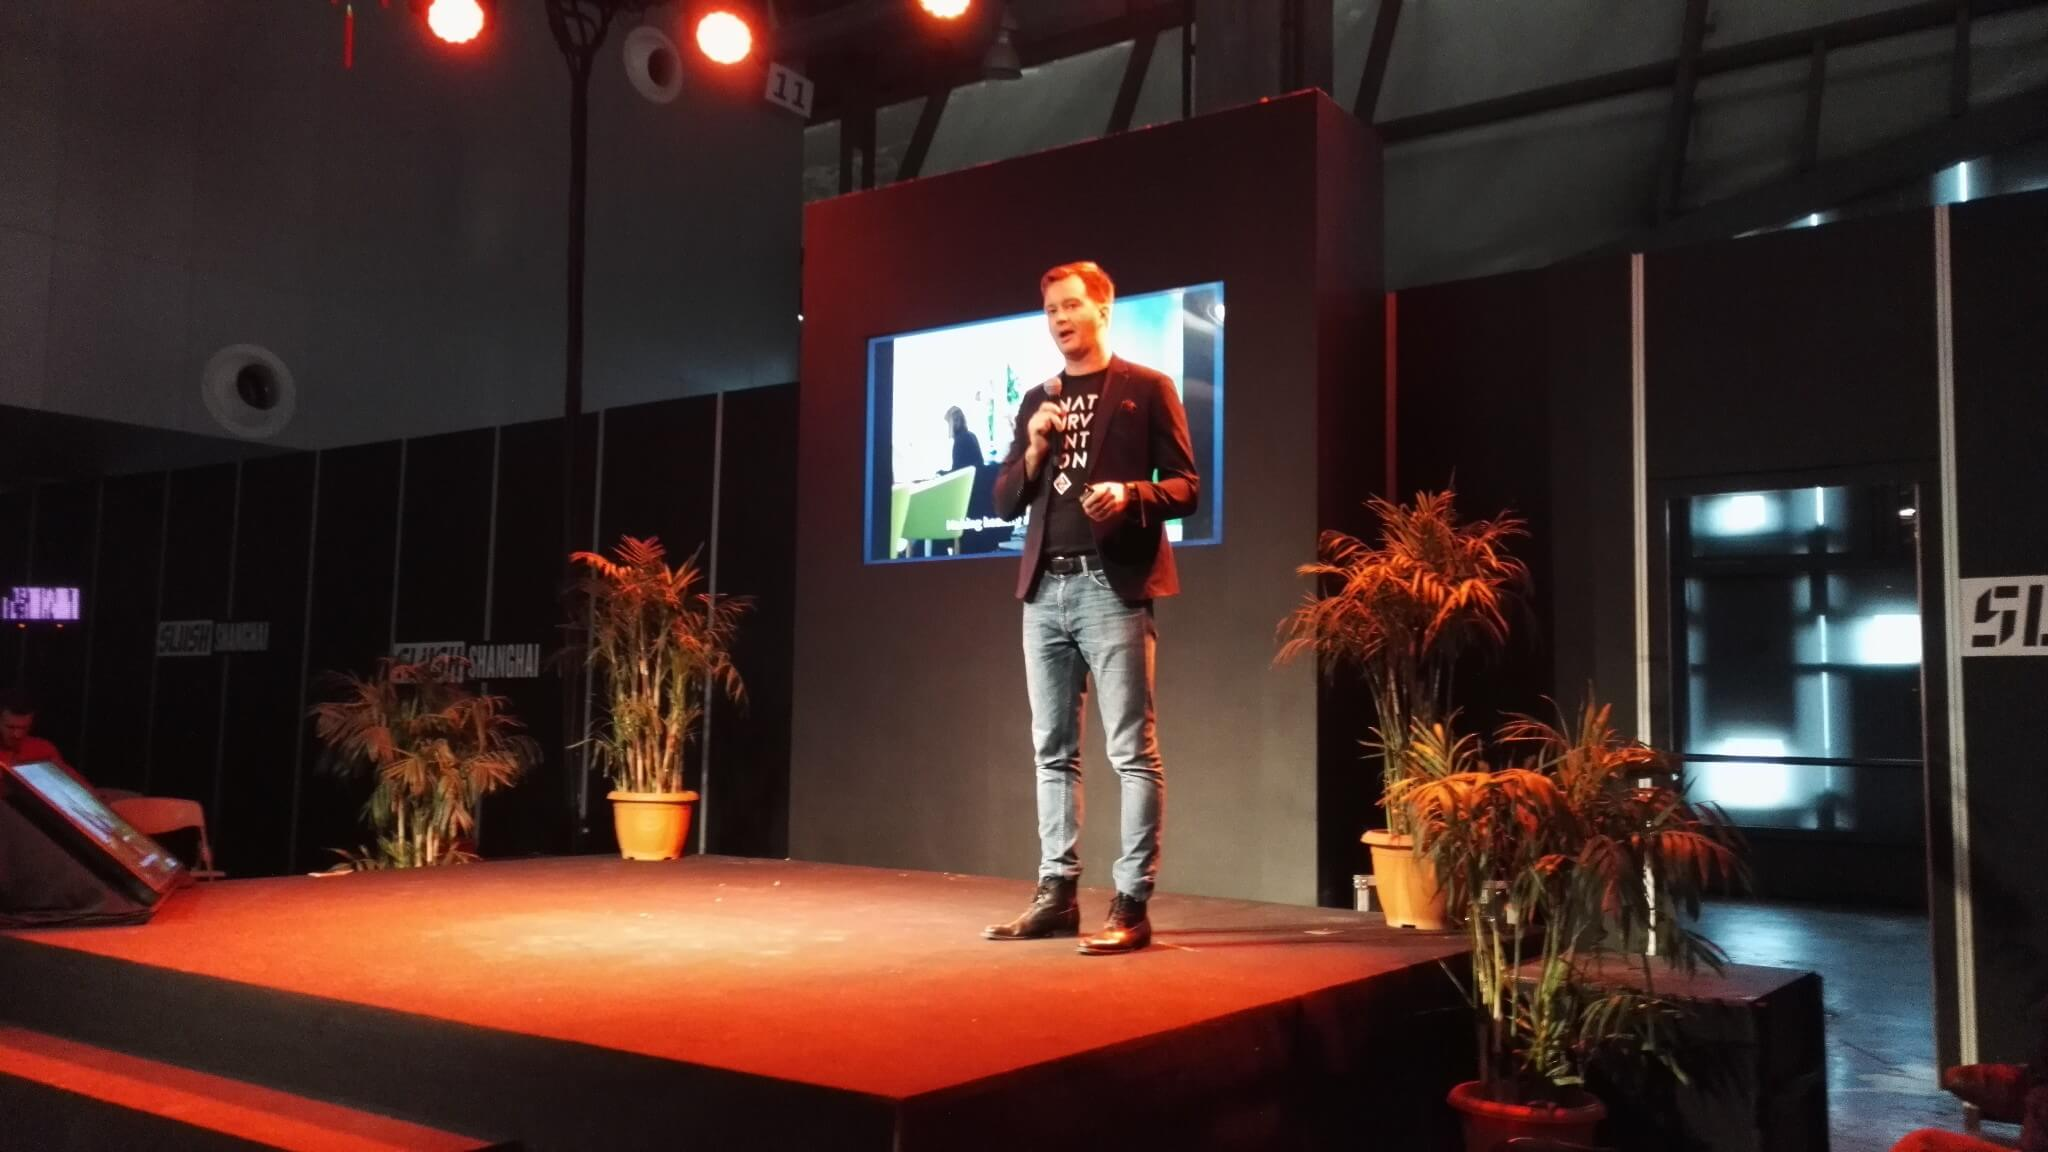 Aki Soudunsaari on stage at Slush Shanghai